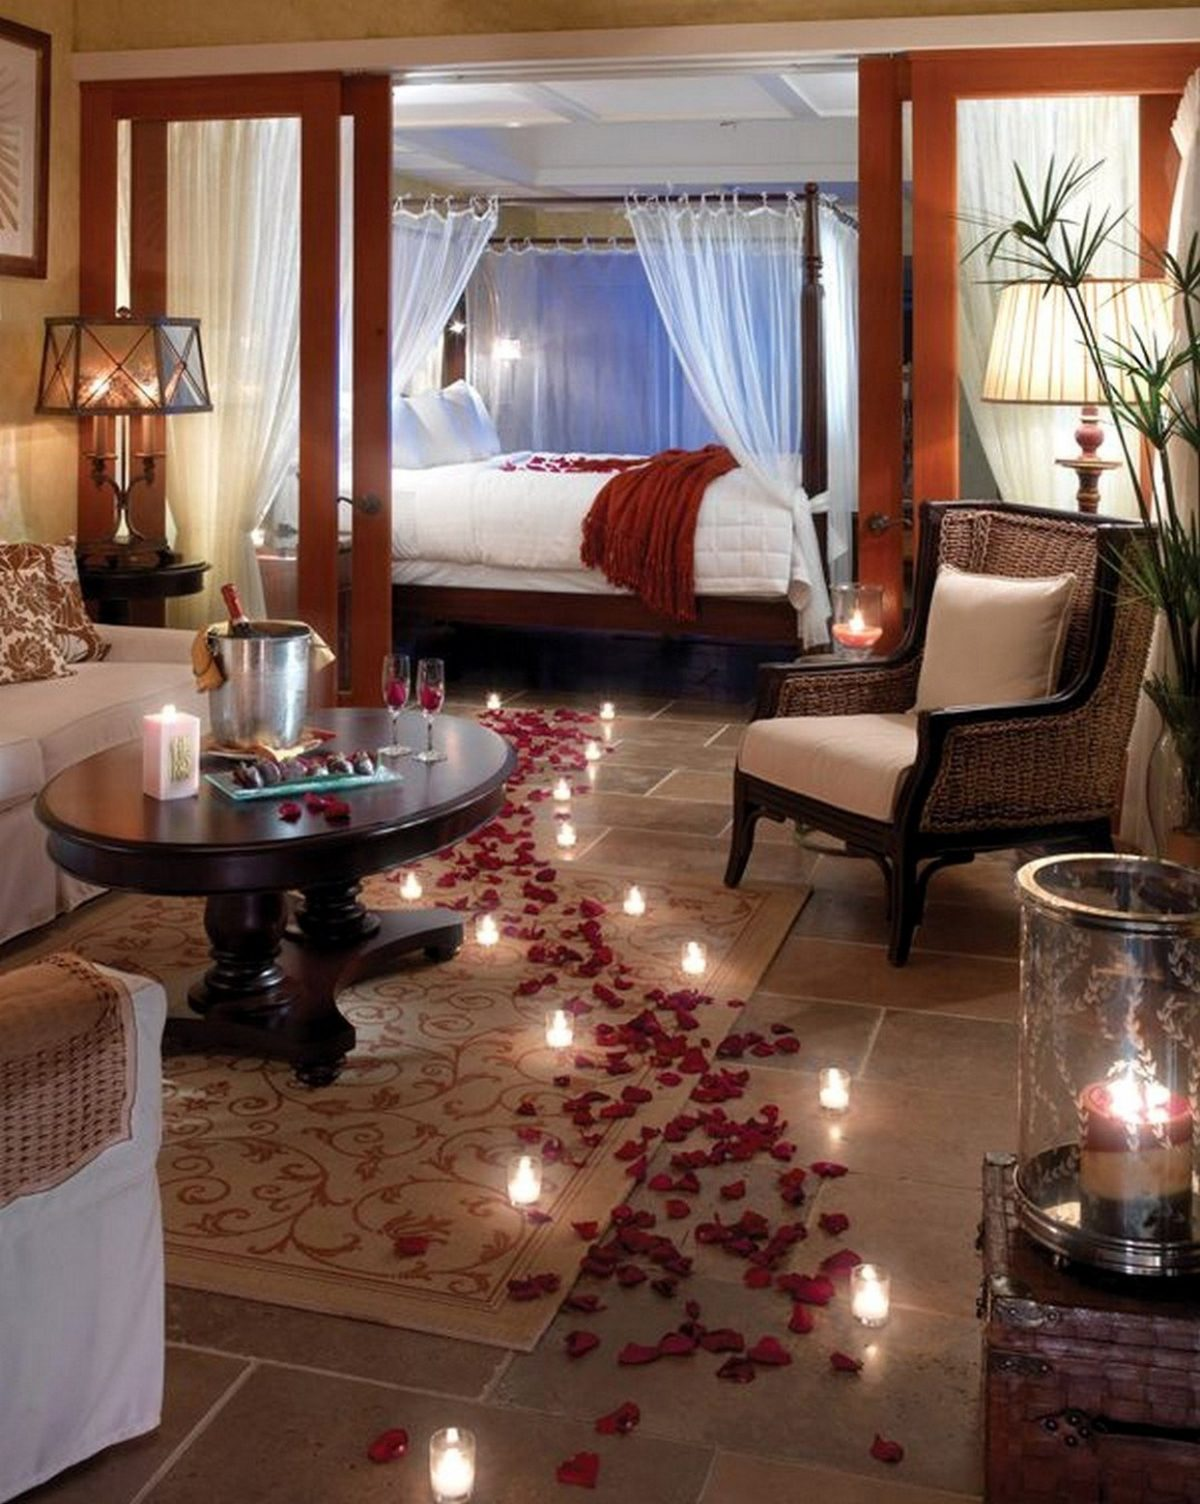 Romantic bedroom ideas for valentine's day